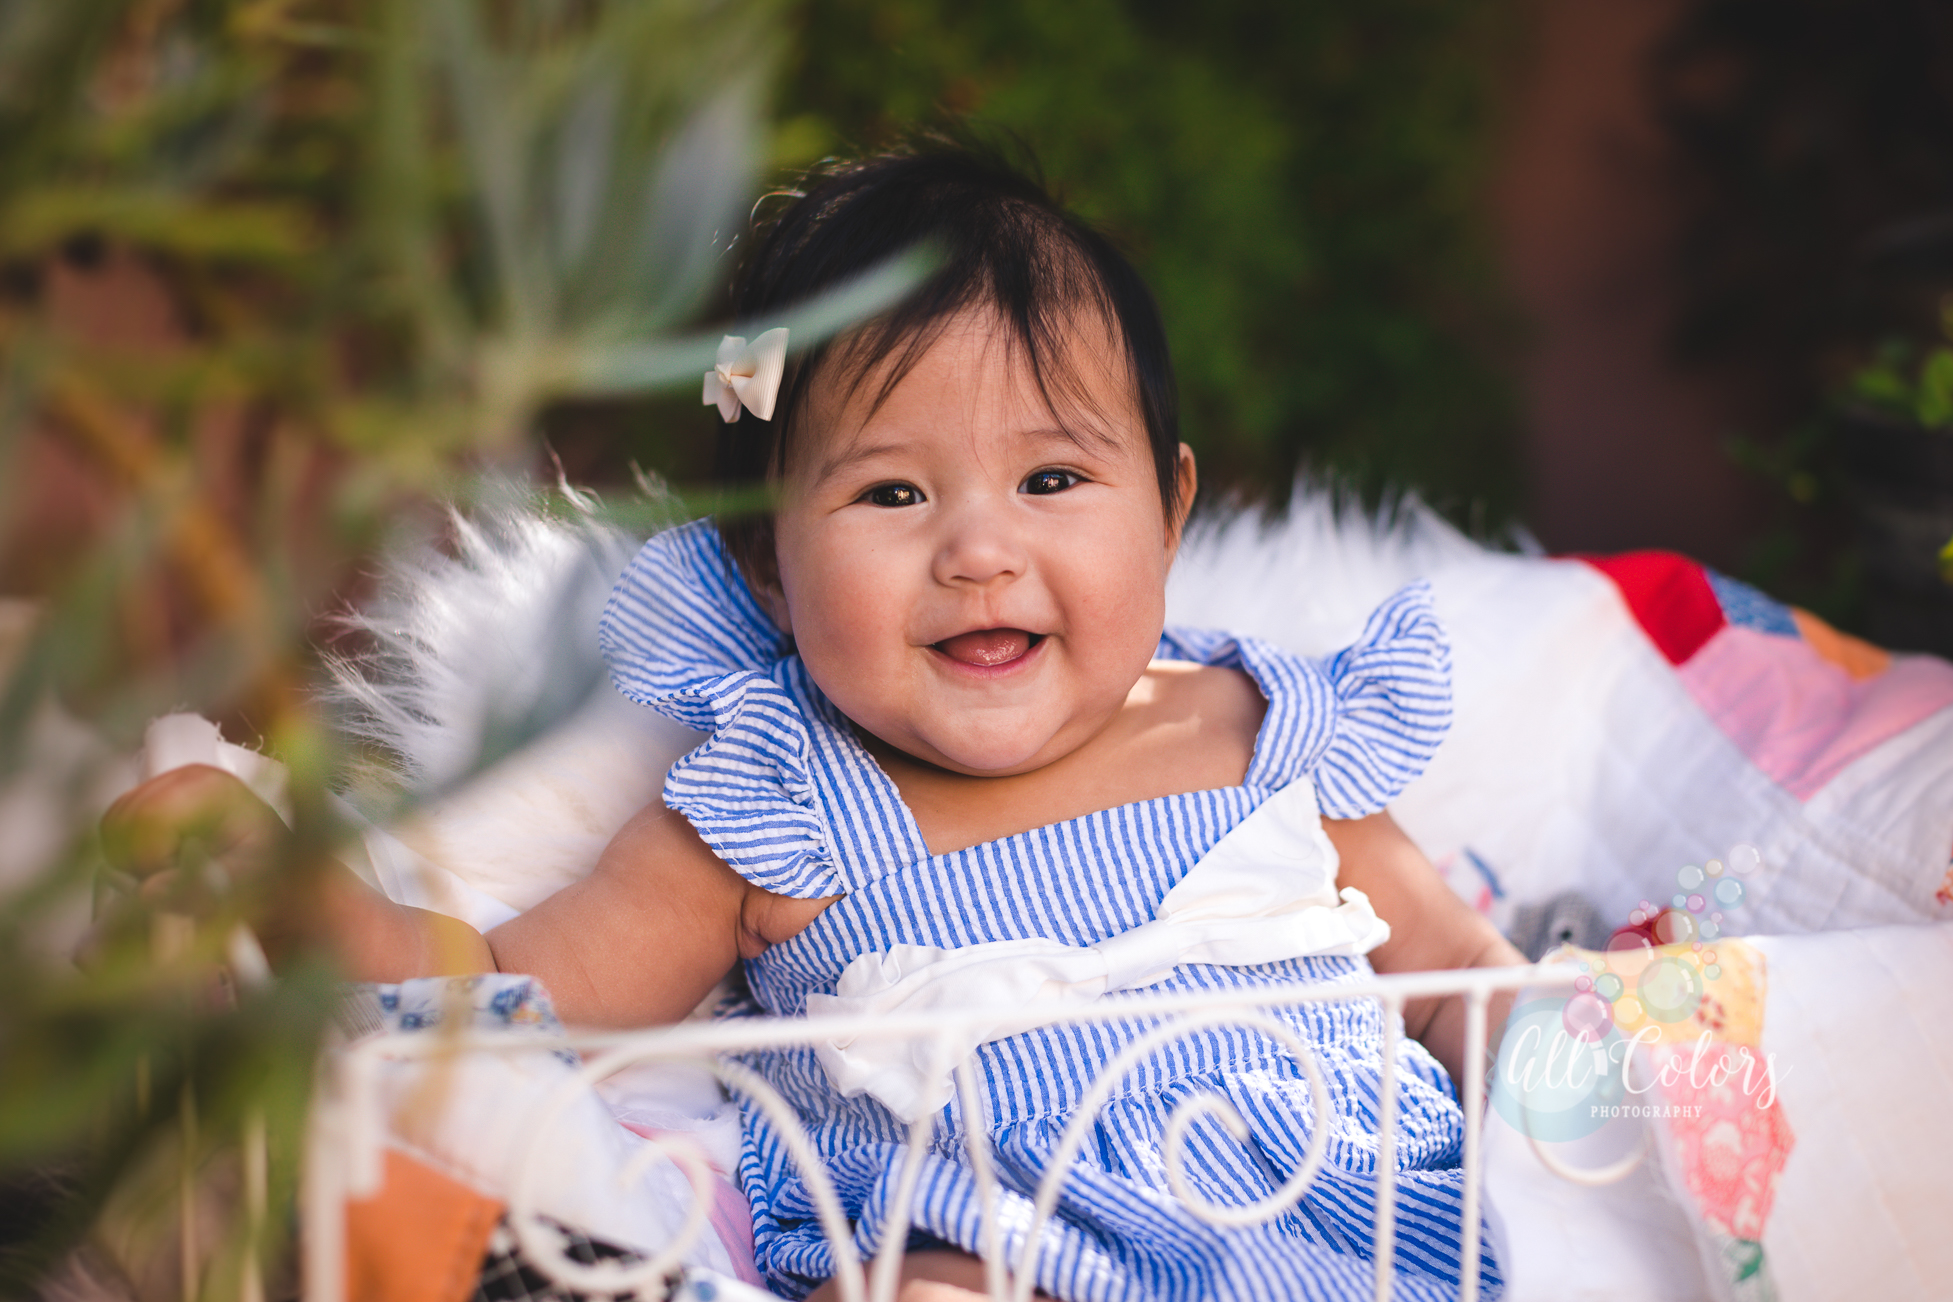 Milestone Photoshoot – 5 months old » San Diego Newborn Photographer – All ColorsPhotography